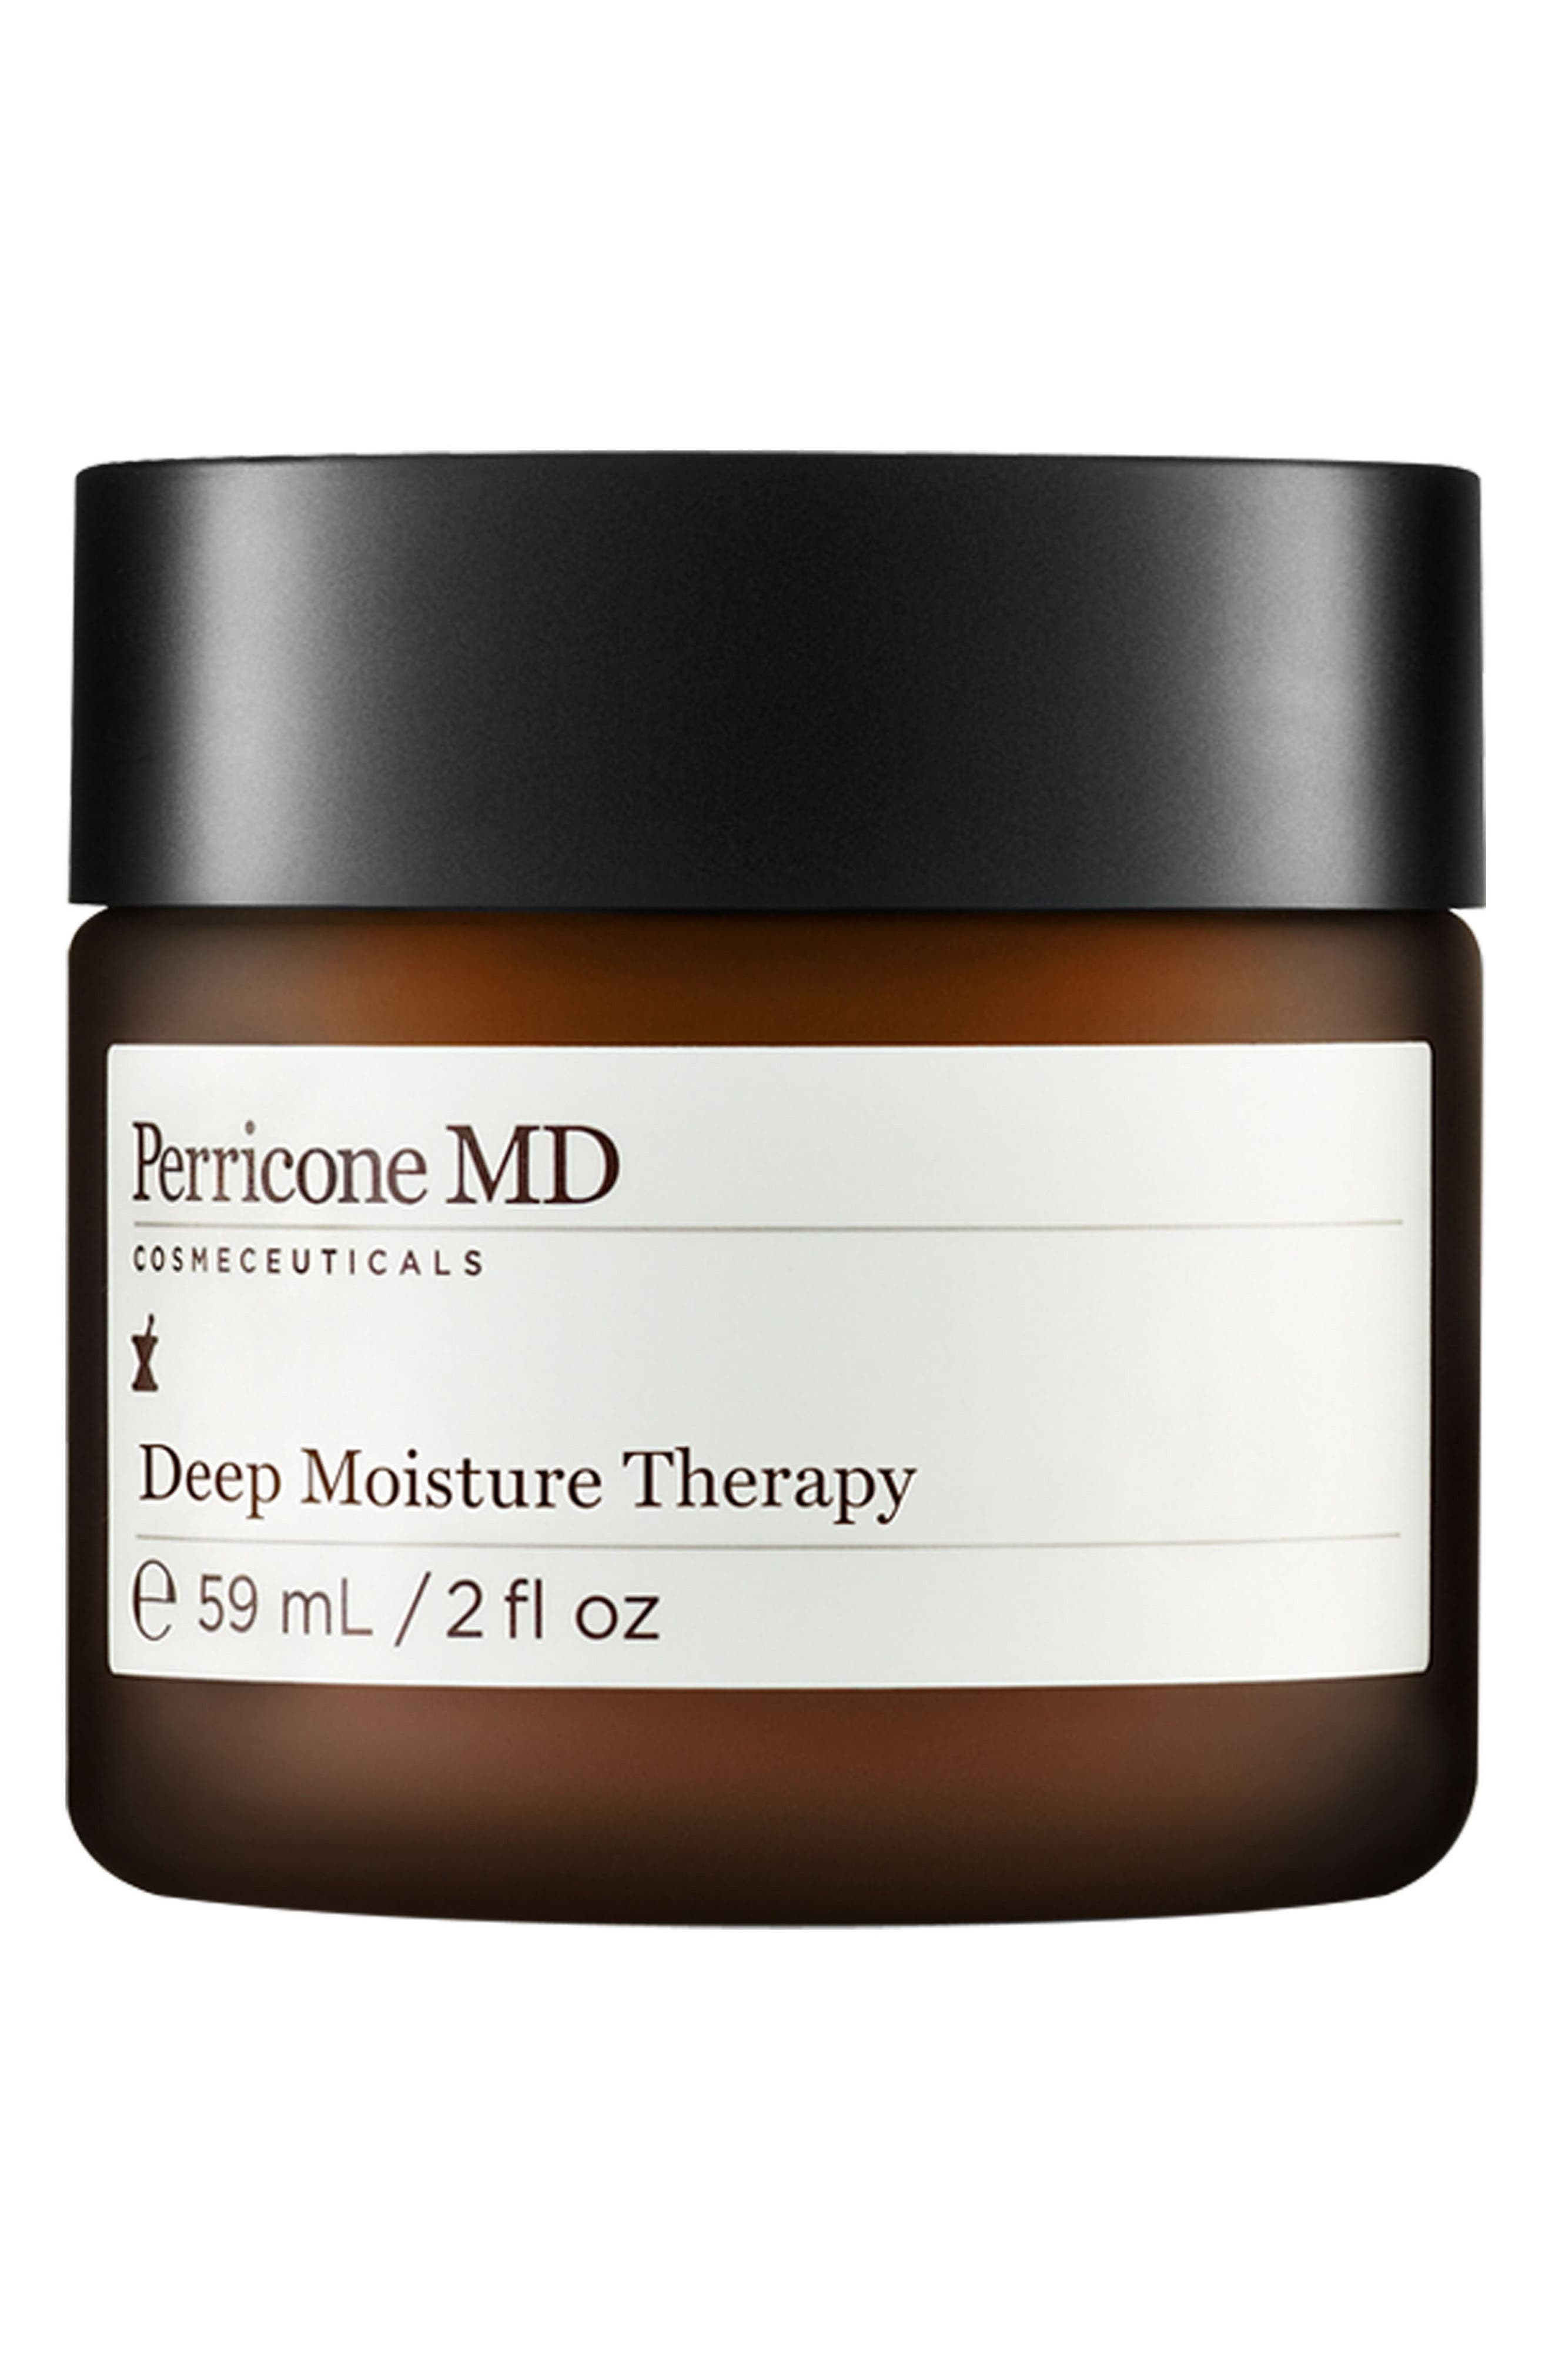 Perricone MD Deep Moisture Therapy